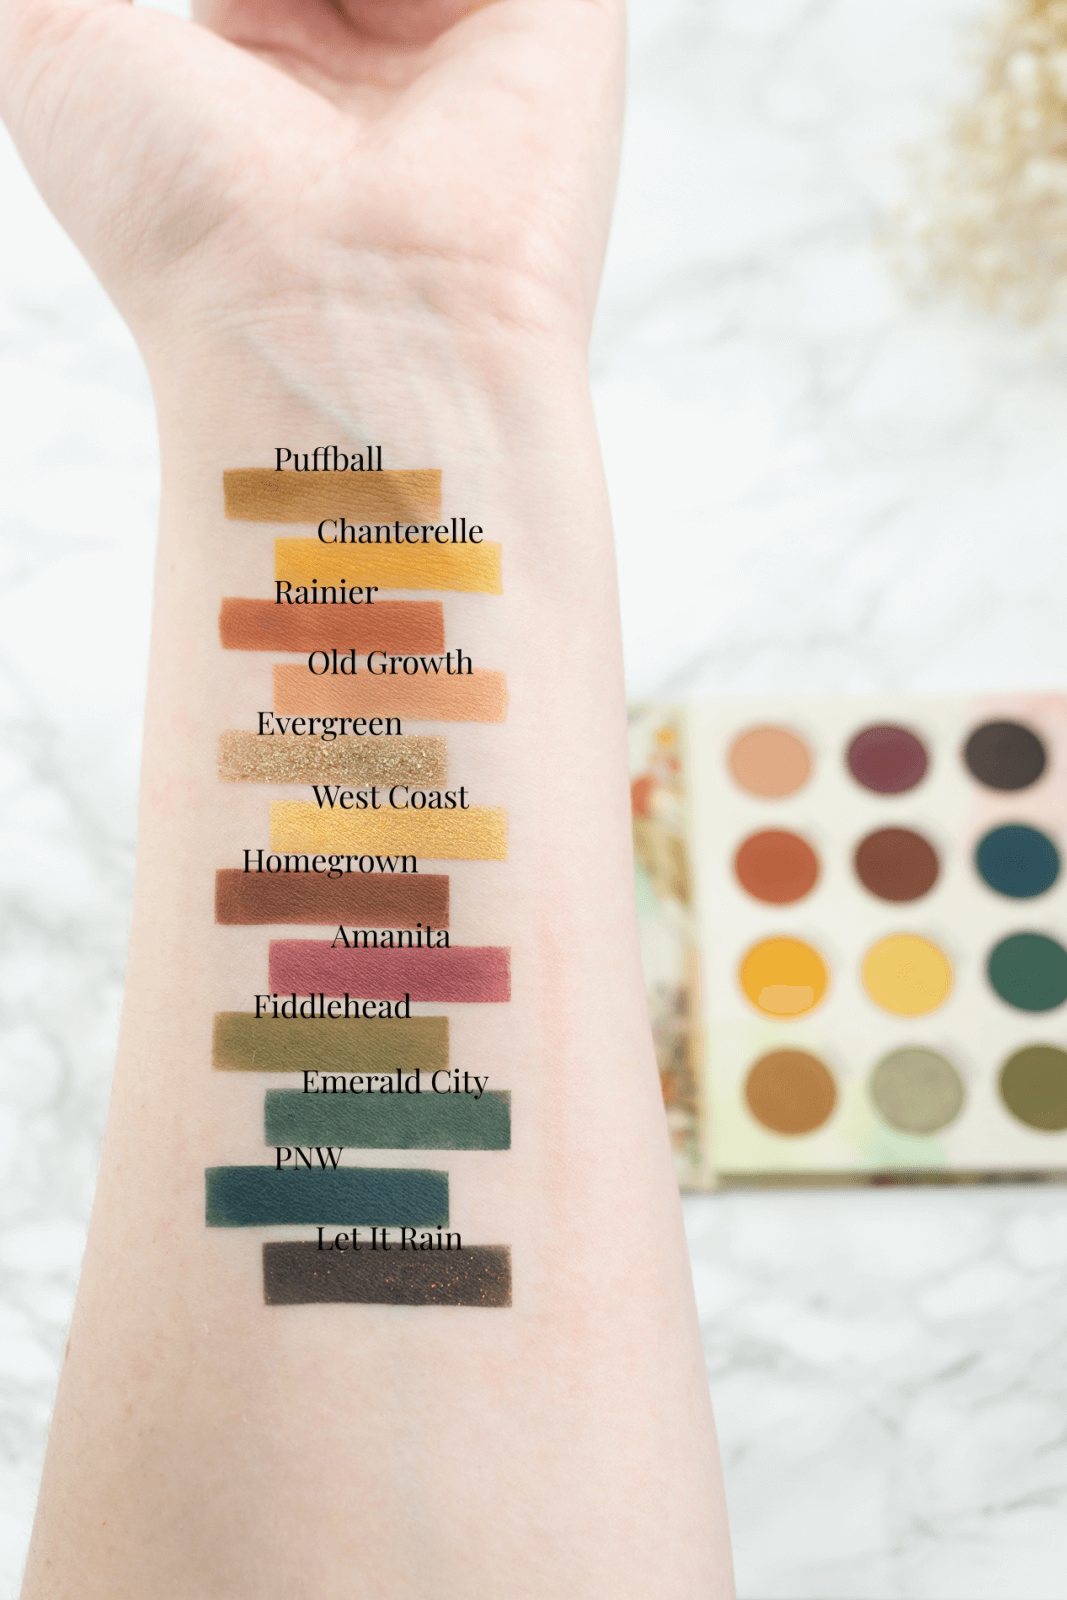 Authentic Forest Vibes With The RawBeautyKristi x Colourpop Collection ⋆ Beautymone